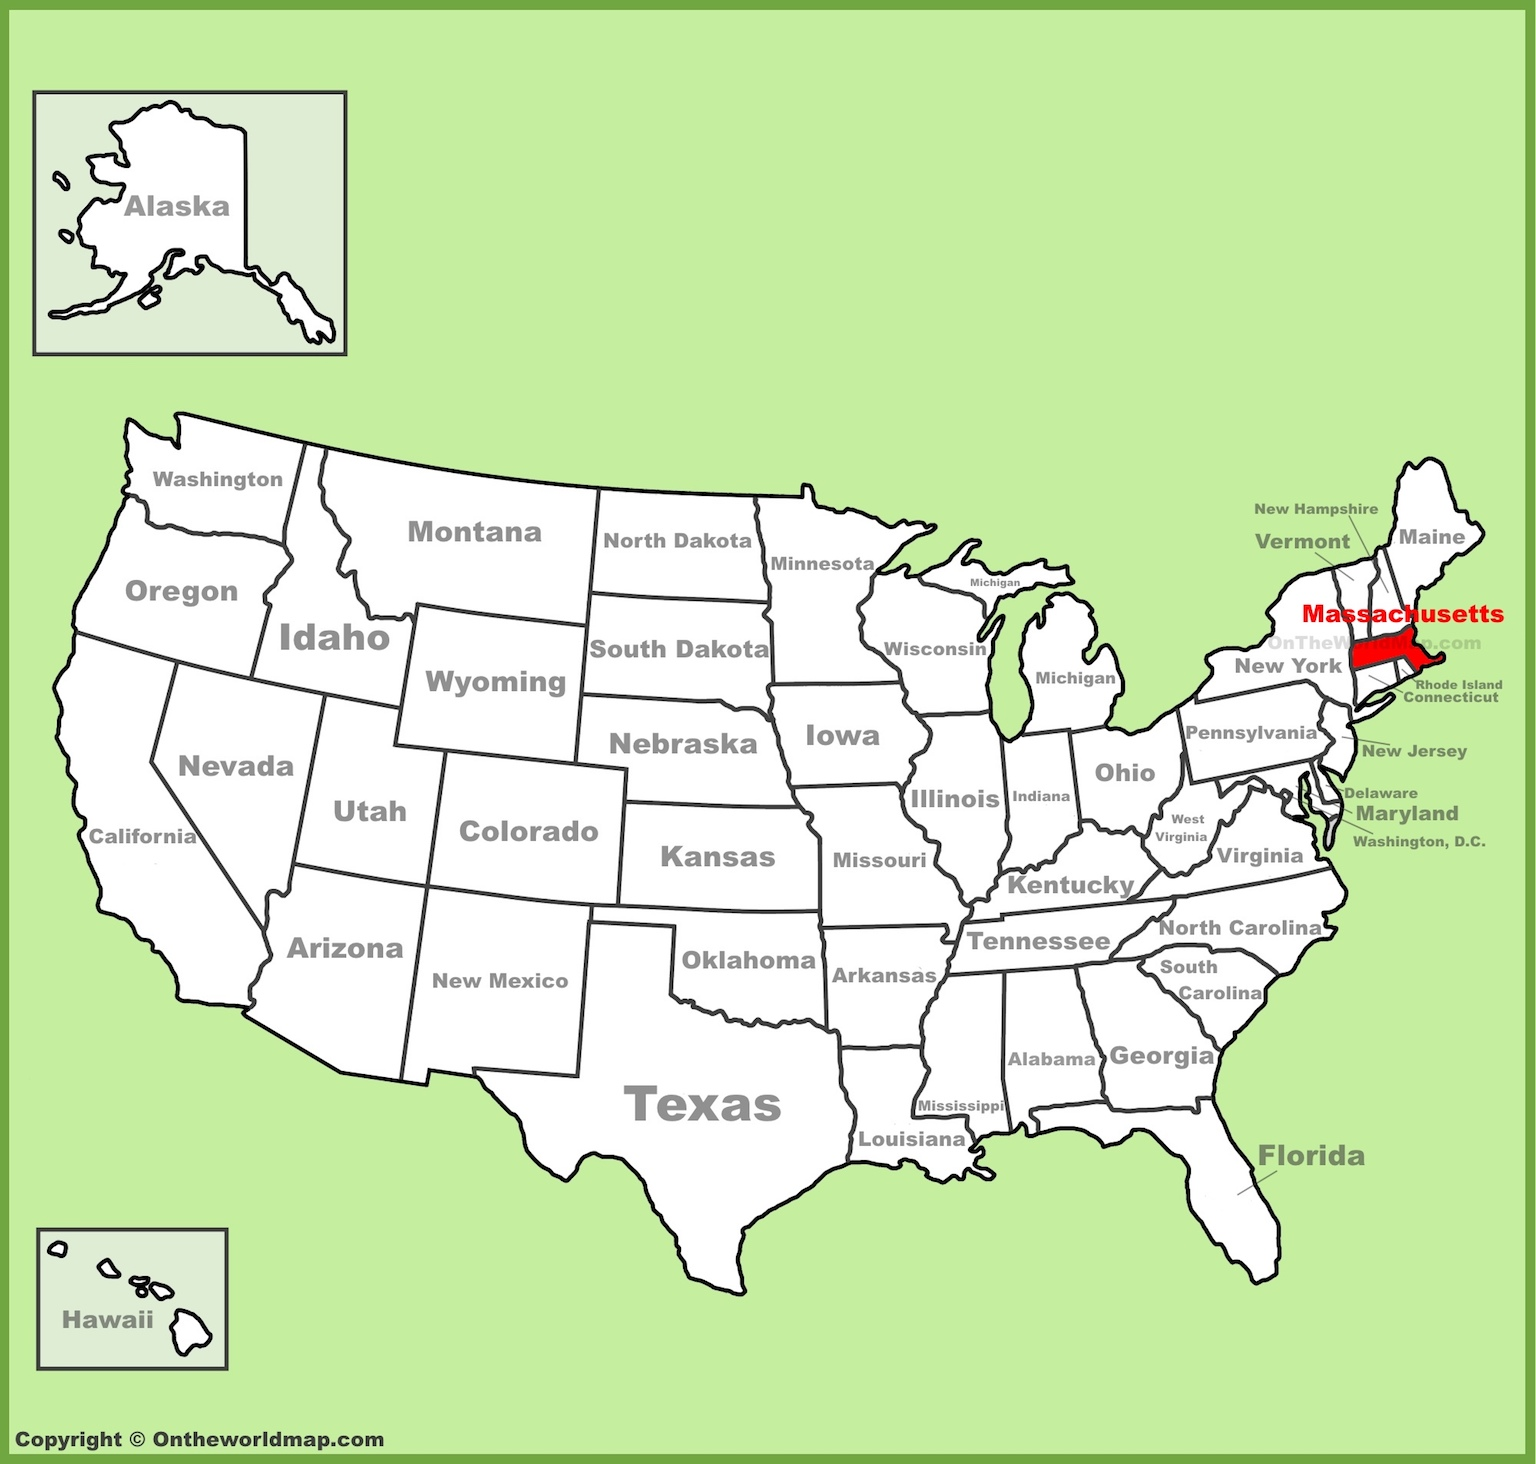 image about Printable Map of Massachusetts called Map Of Machusetts And Even more